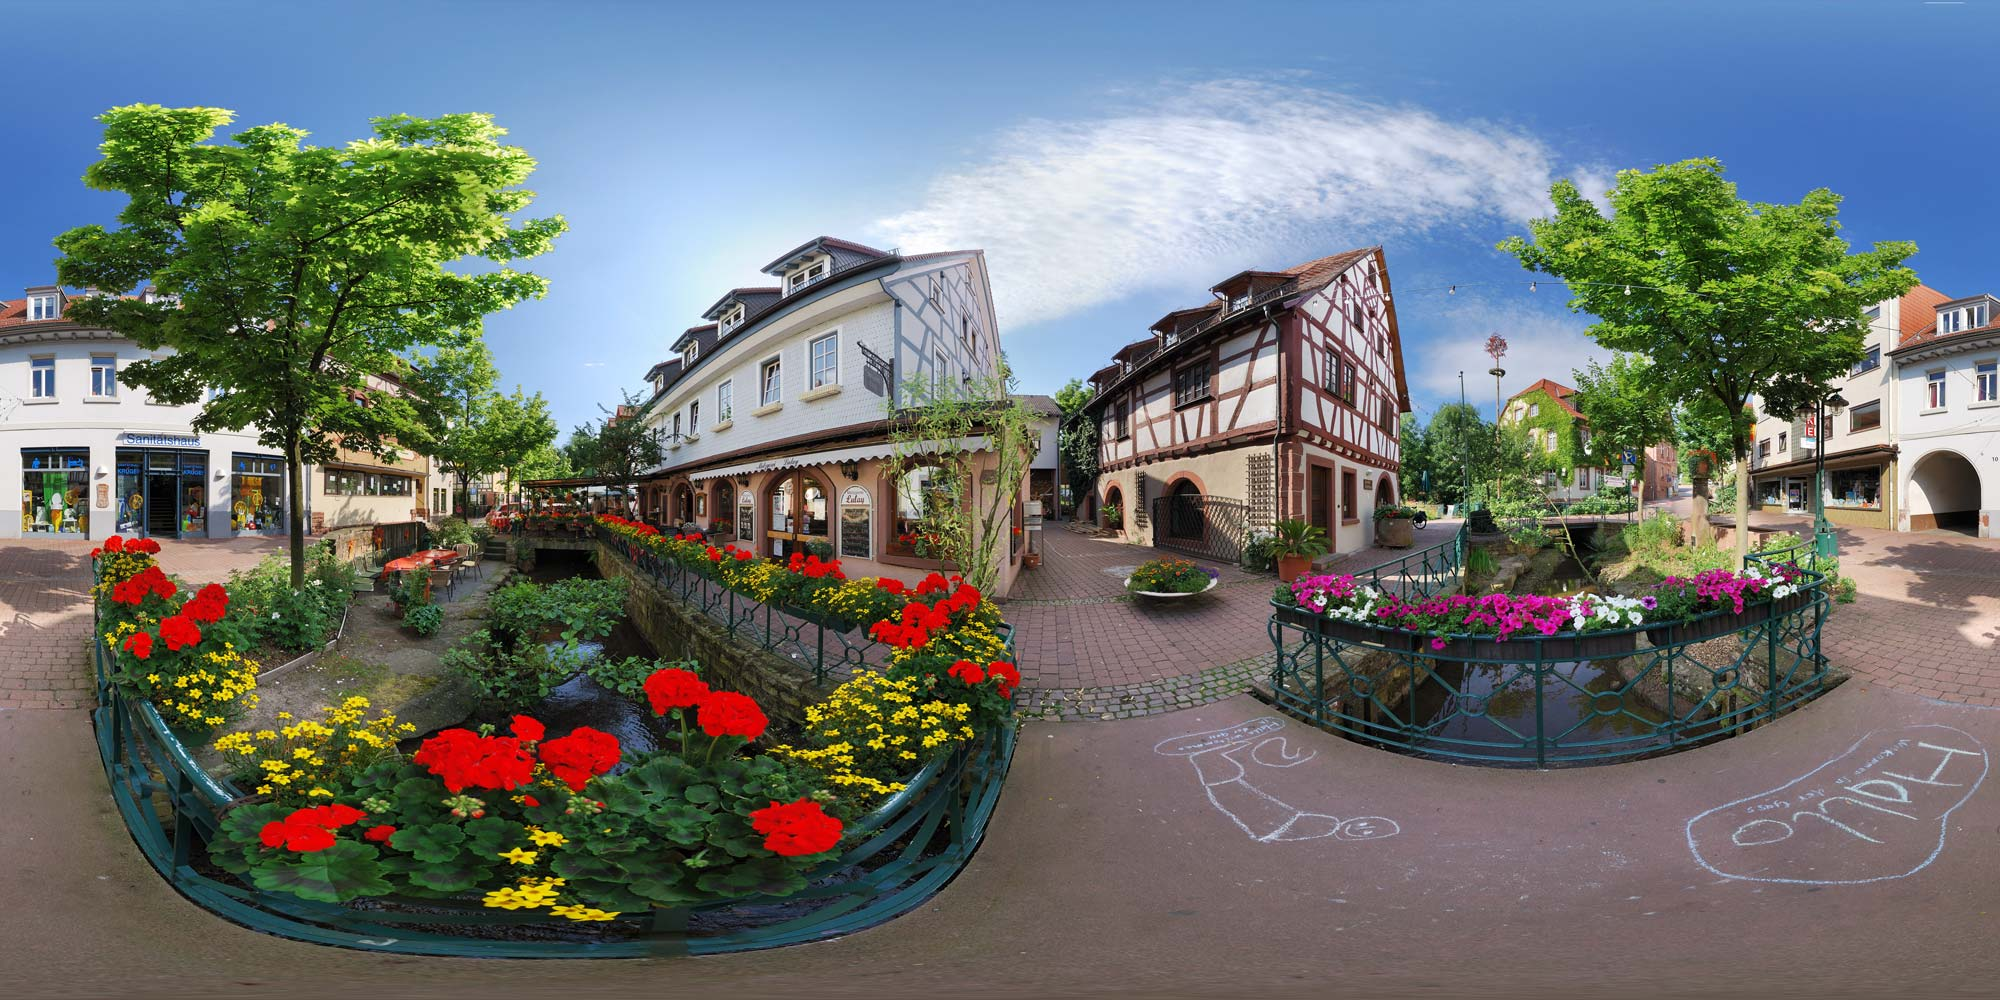 kubische panoramen panorama foto hessen s dwest wald michelbach. Black Bedroom Furniture Sets. Home Design Ideas